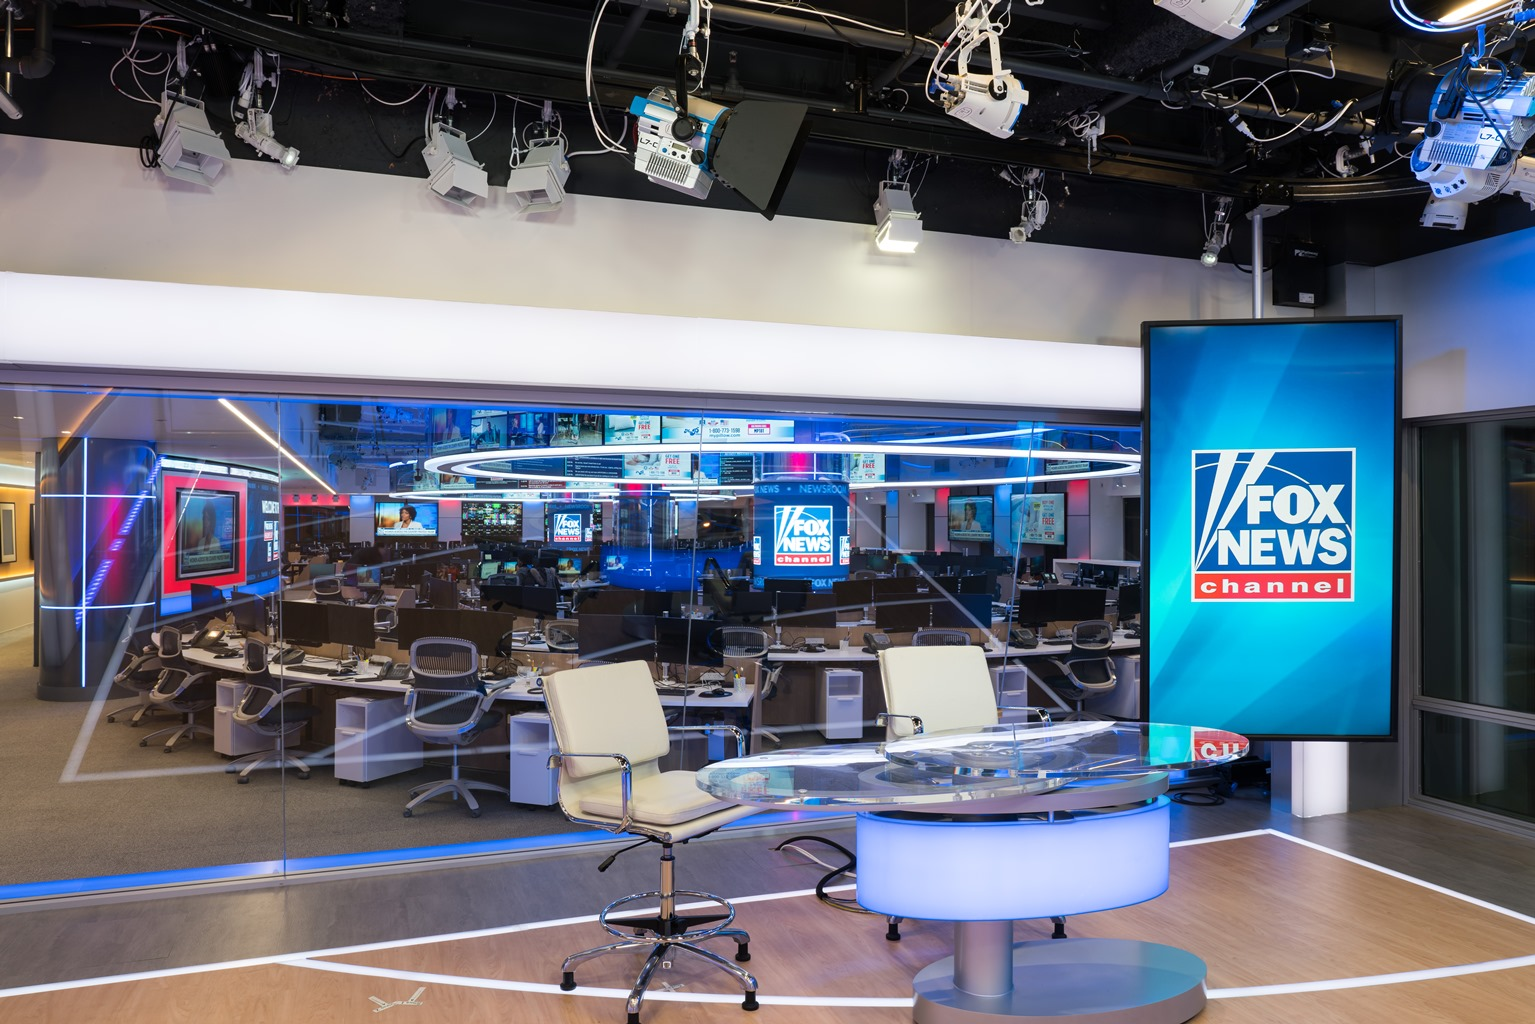 Here's a First Look at Fox News' New Newsroom | TVNewser